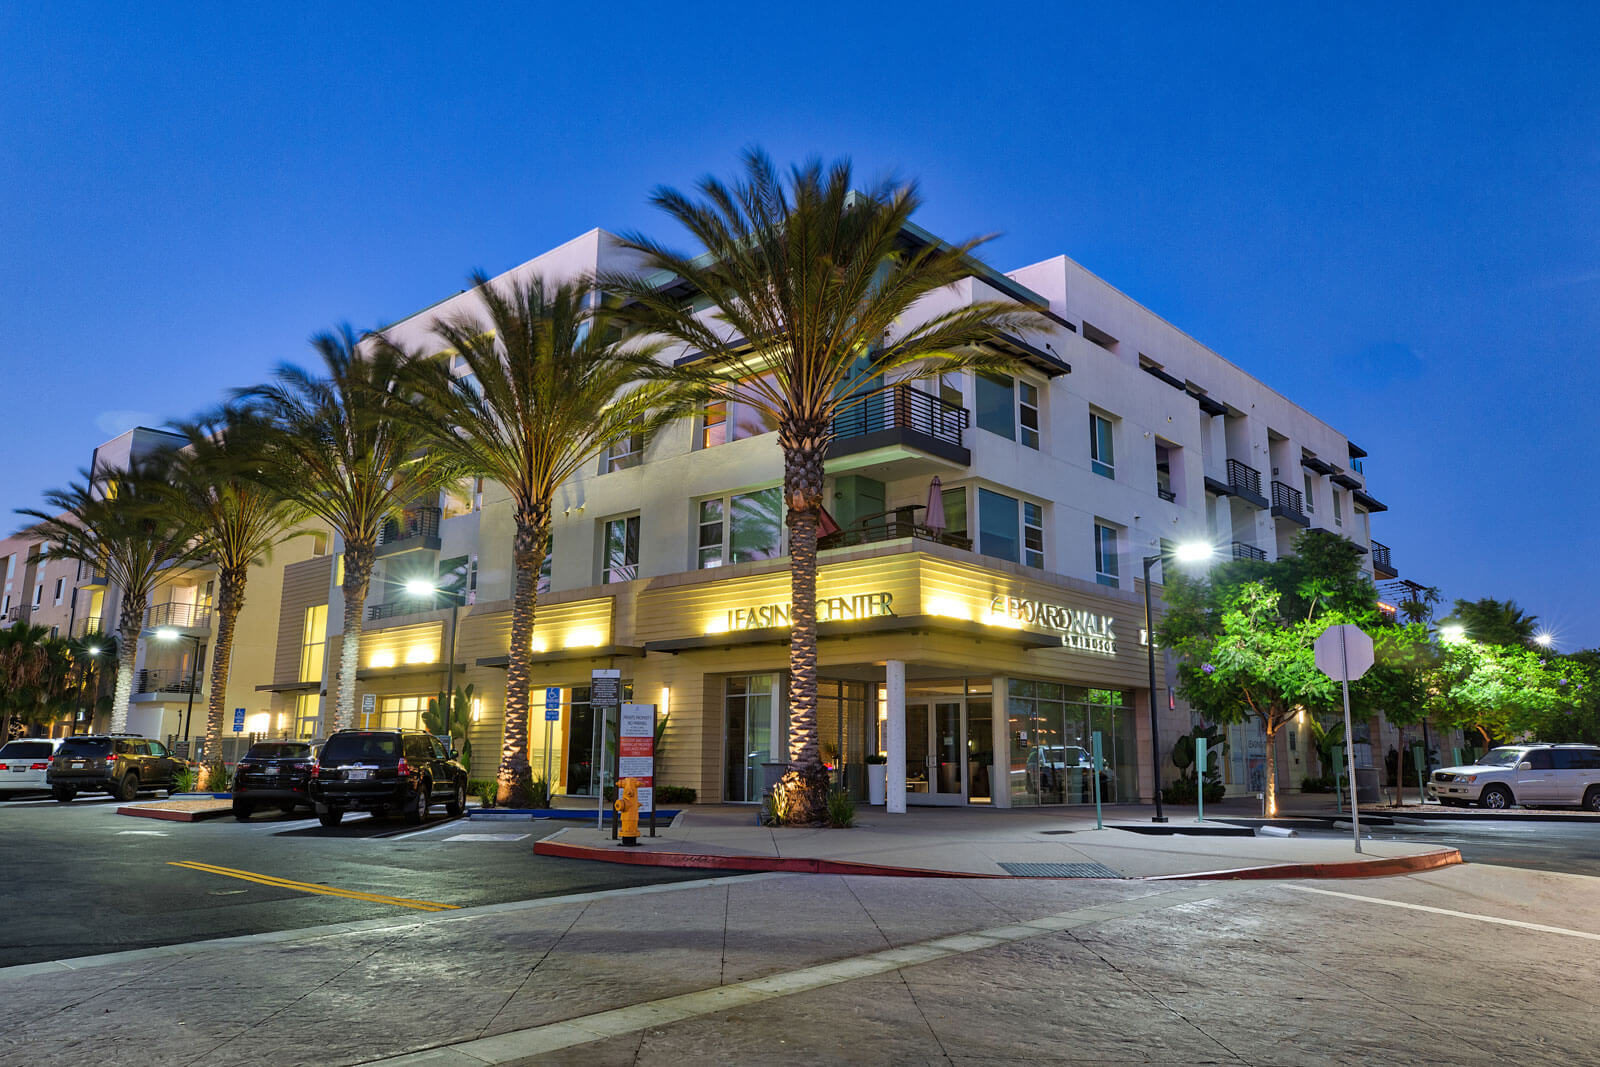 Street View of Building at Boardwalk by Windsor, Huntington Beach, California